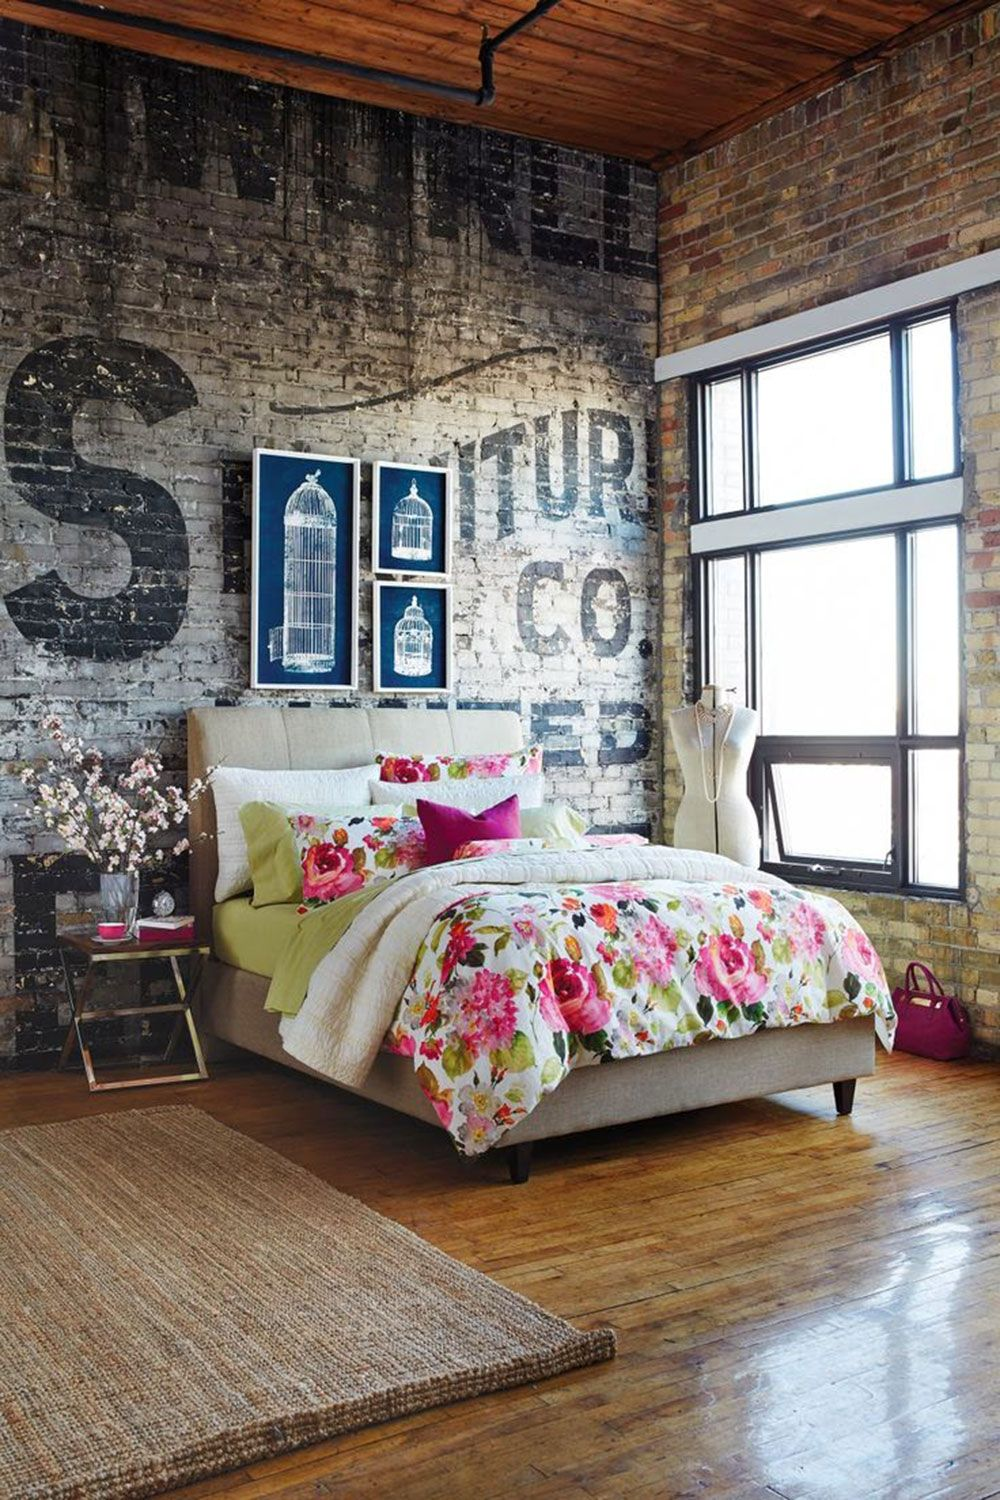 19 stunning interior brick wall ideas decorate with exposed brick walls homelovr. Black Bedroom Furniture Sets. Home Design Ideas